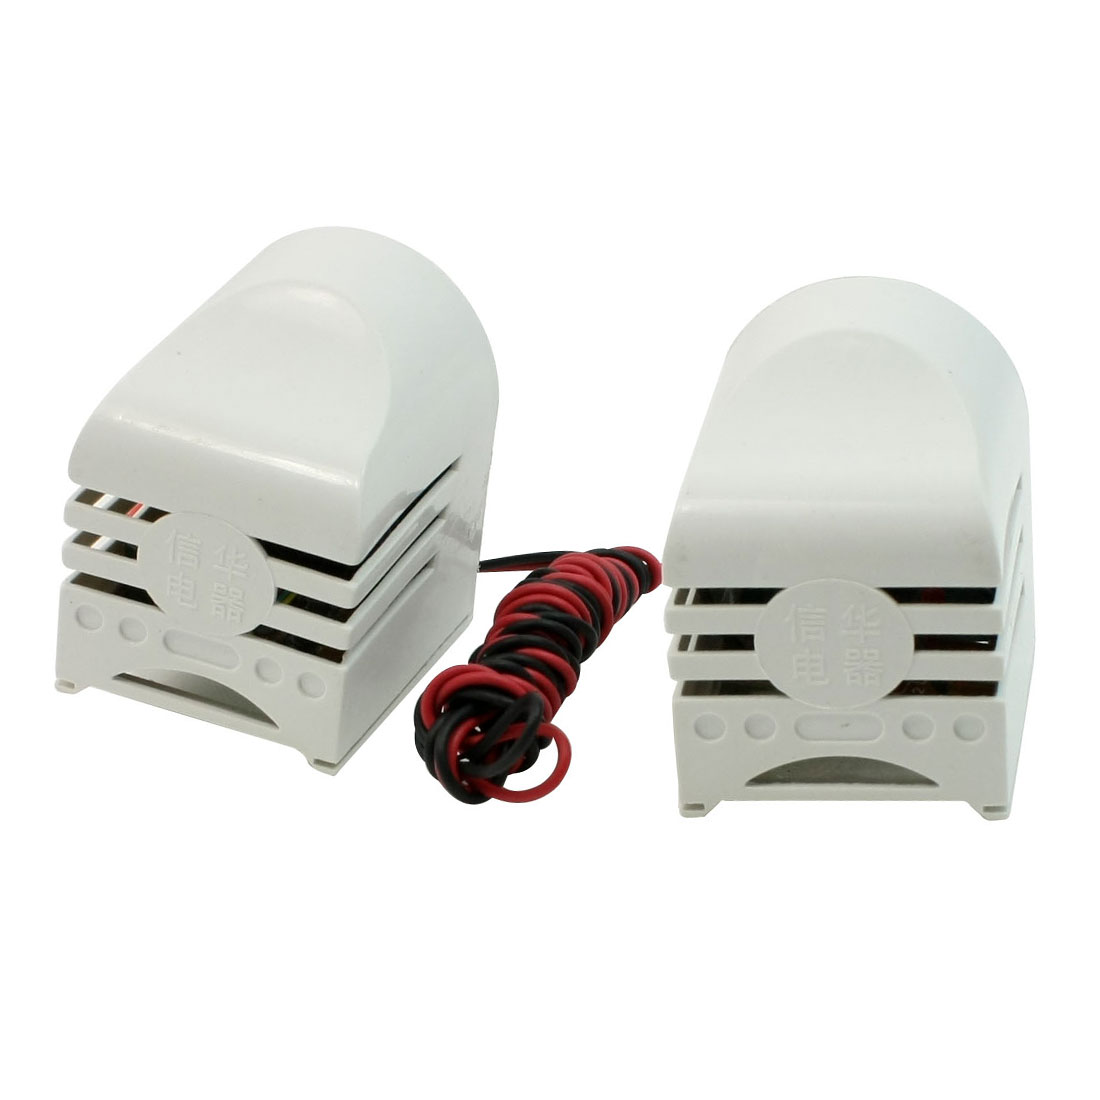 AC 220V 0.18A 40W T10 T12 Fluorescent Tube Bulb Lamp Holder Ballast 2 Pcs